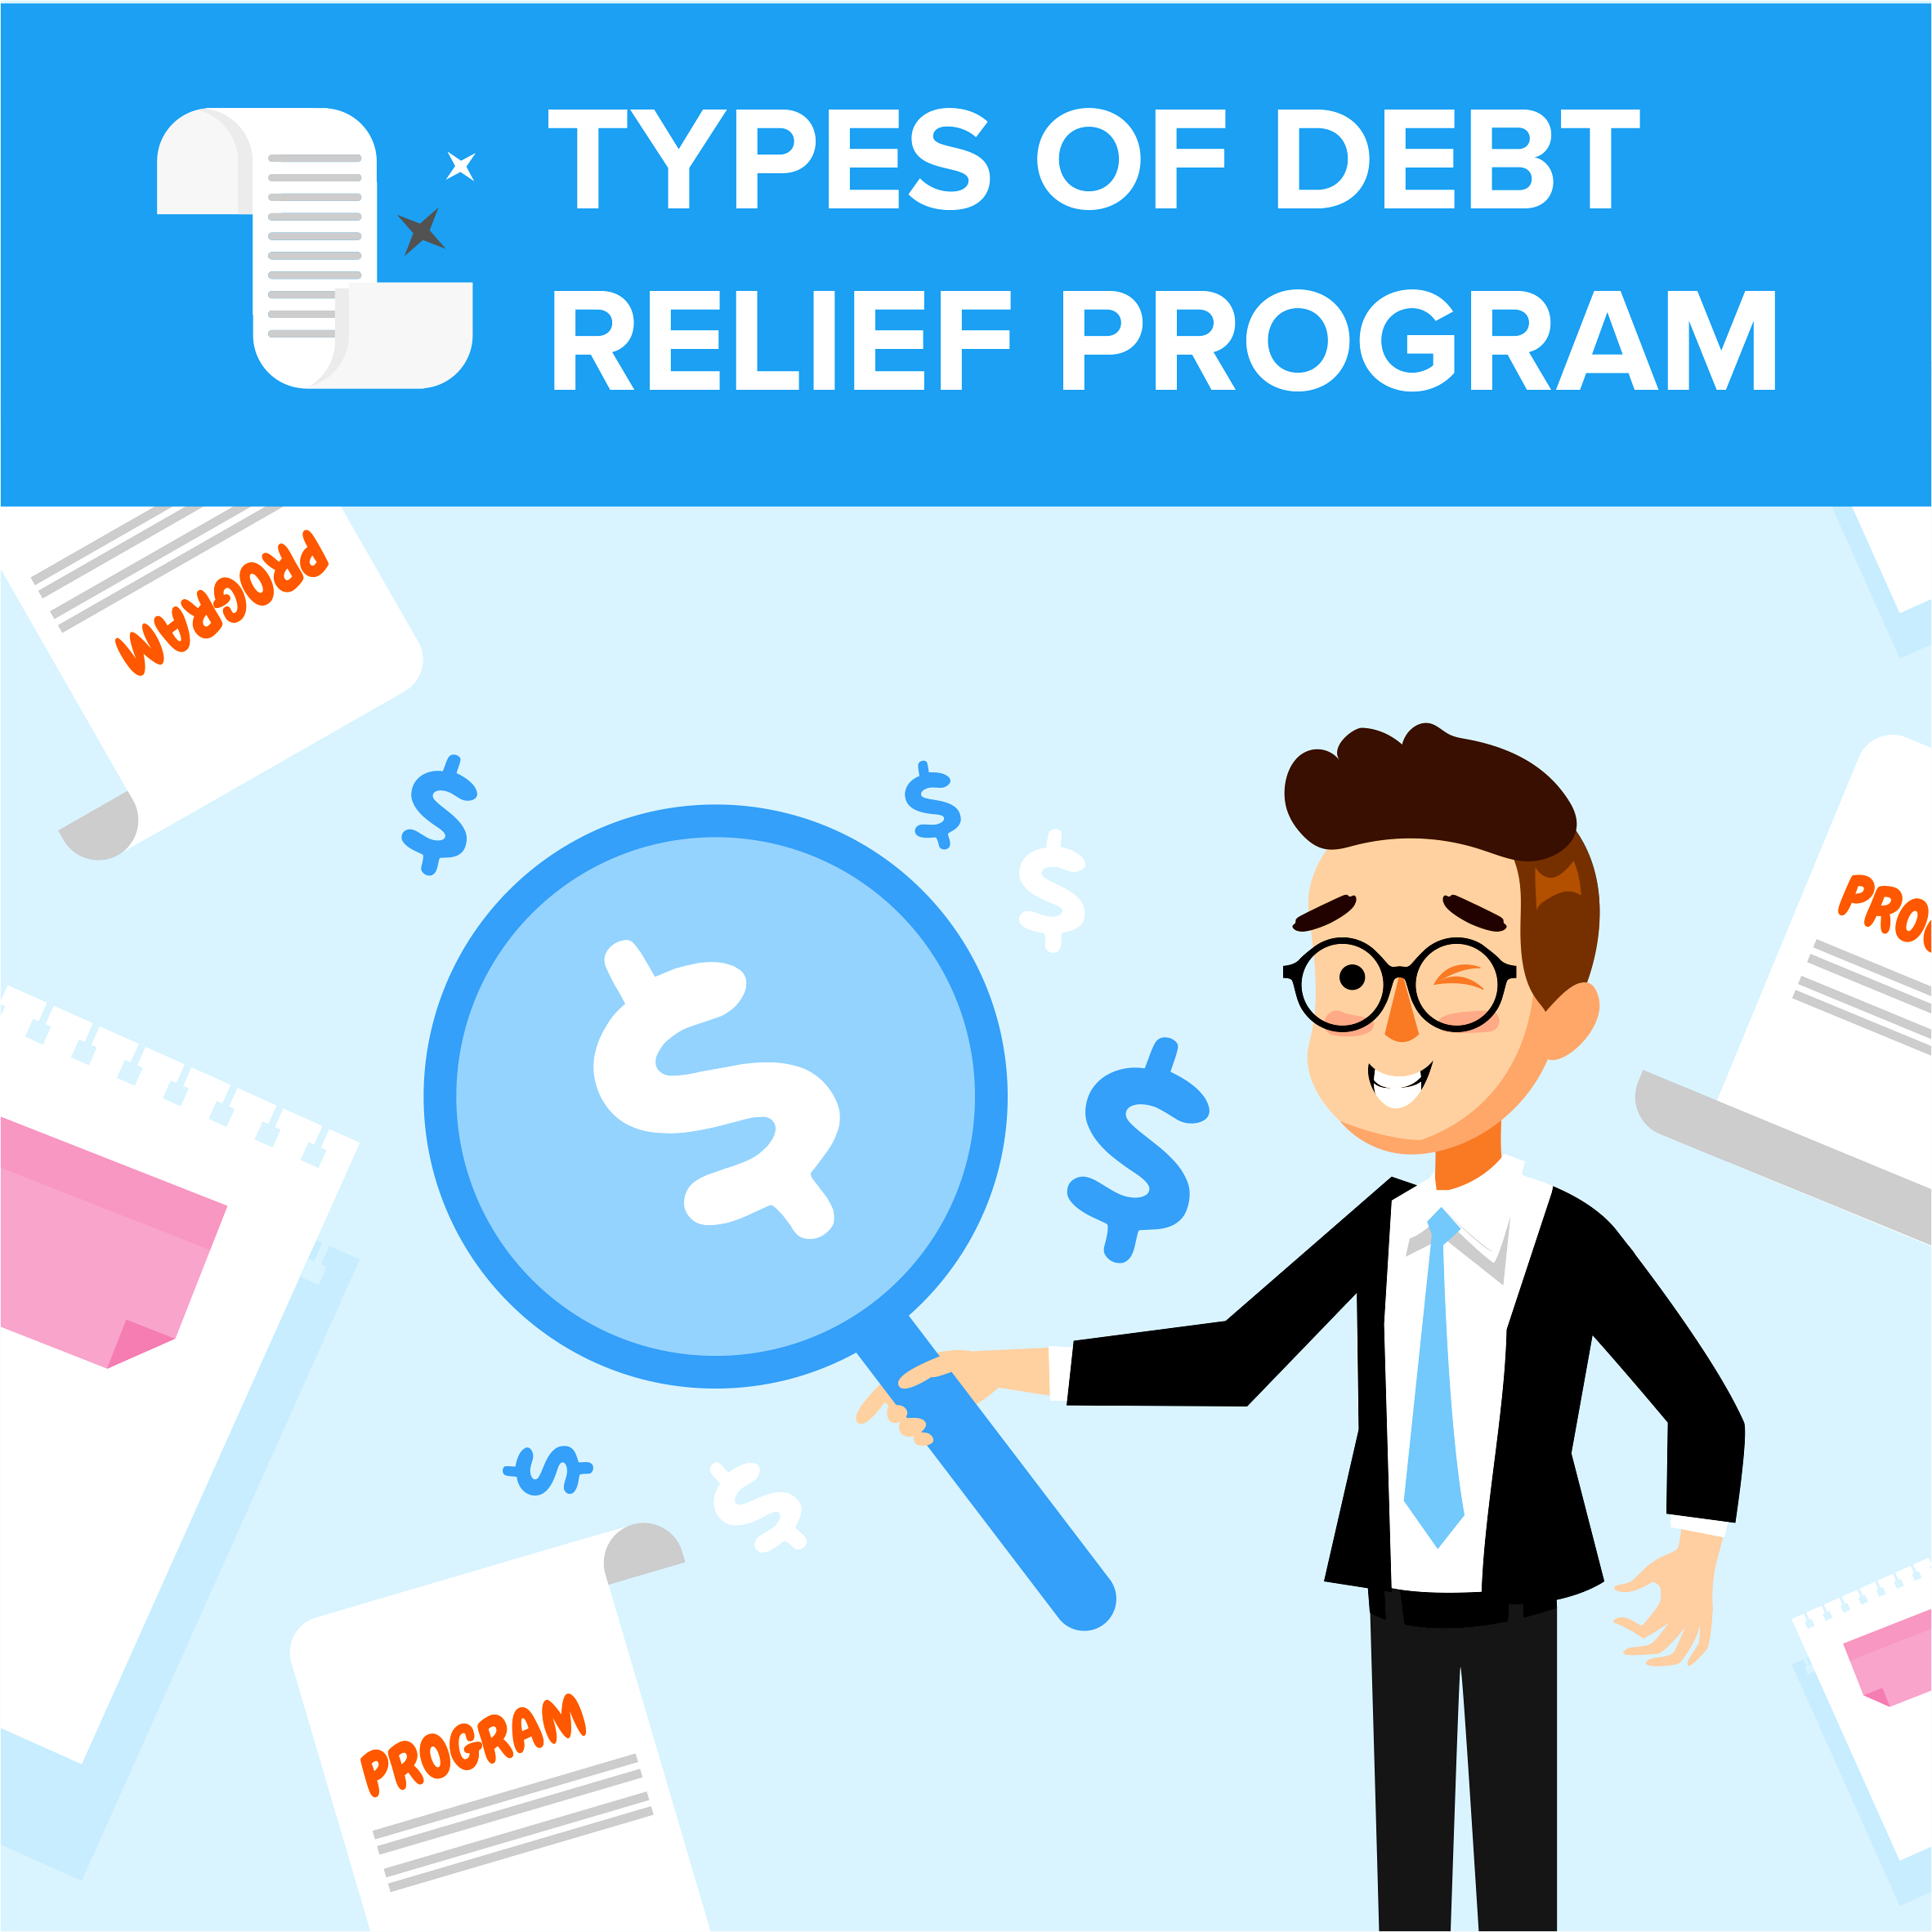 Types of Debt Relief Programs